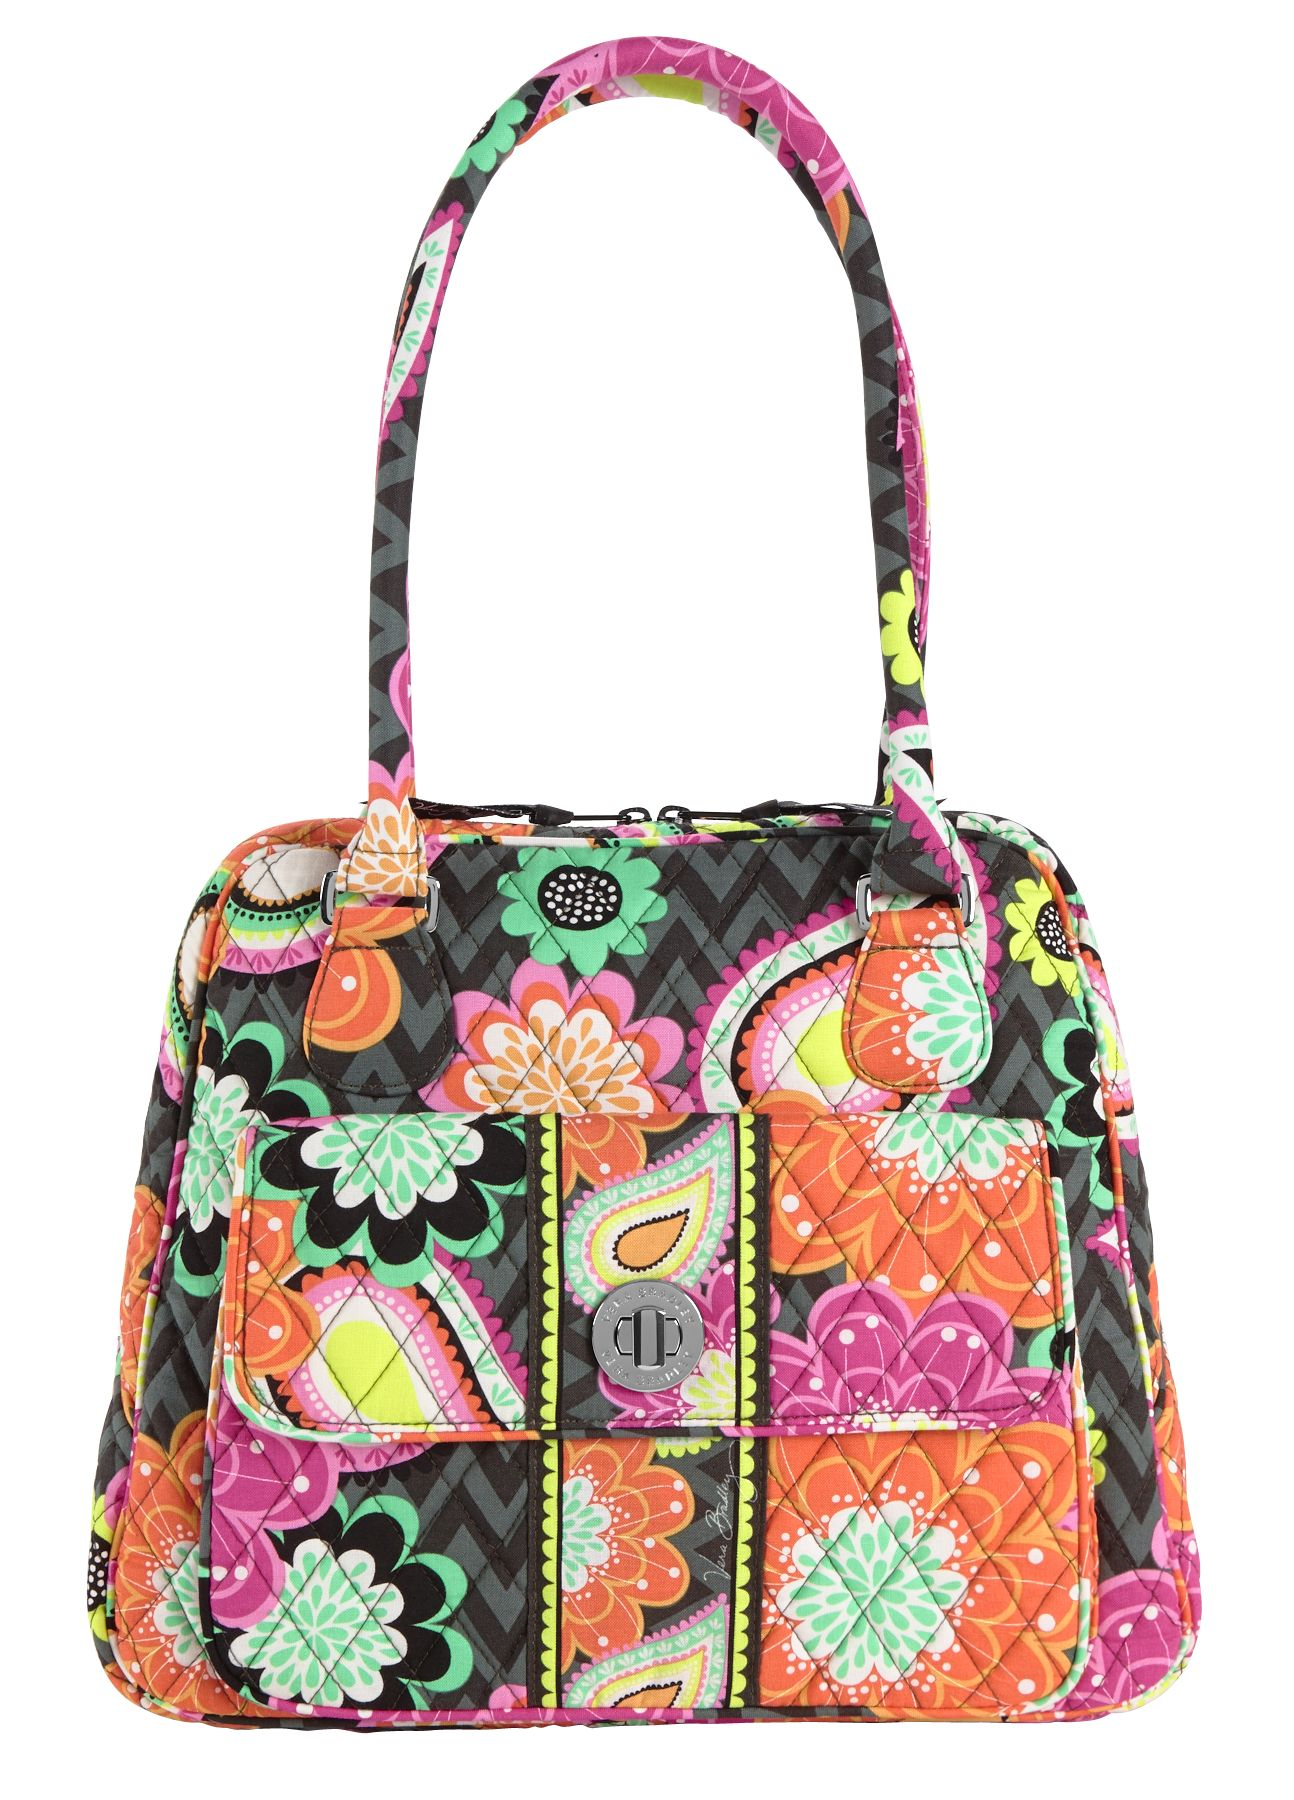 Vera Bradley Turn Lock Satchel in Ziggy Zinnia